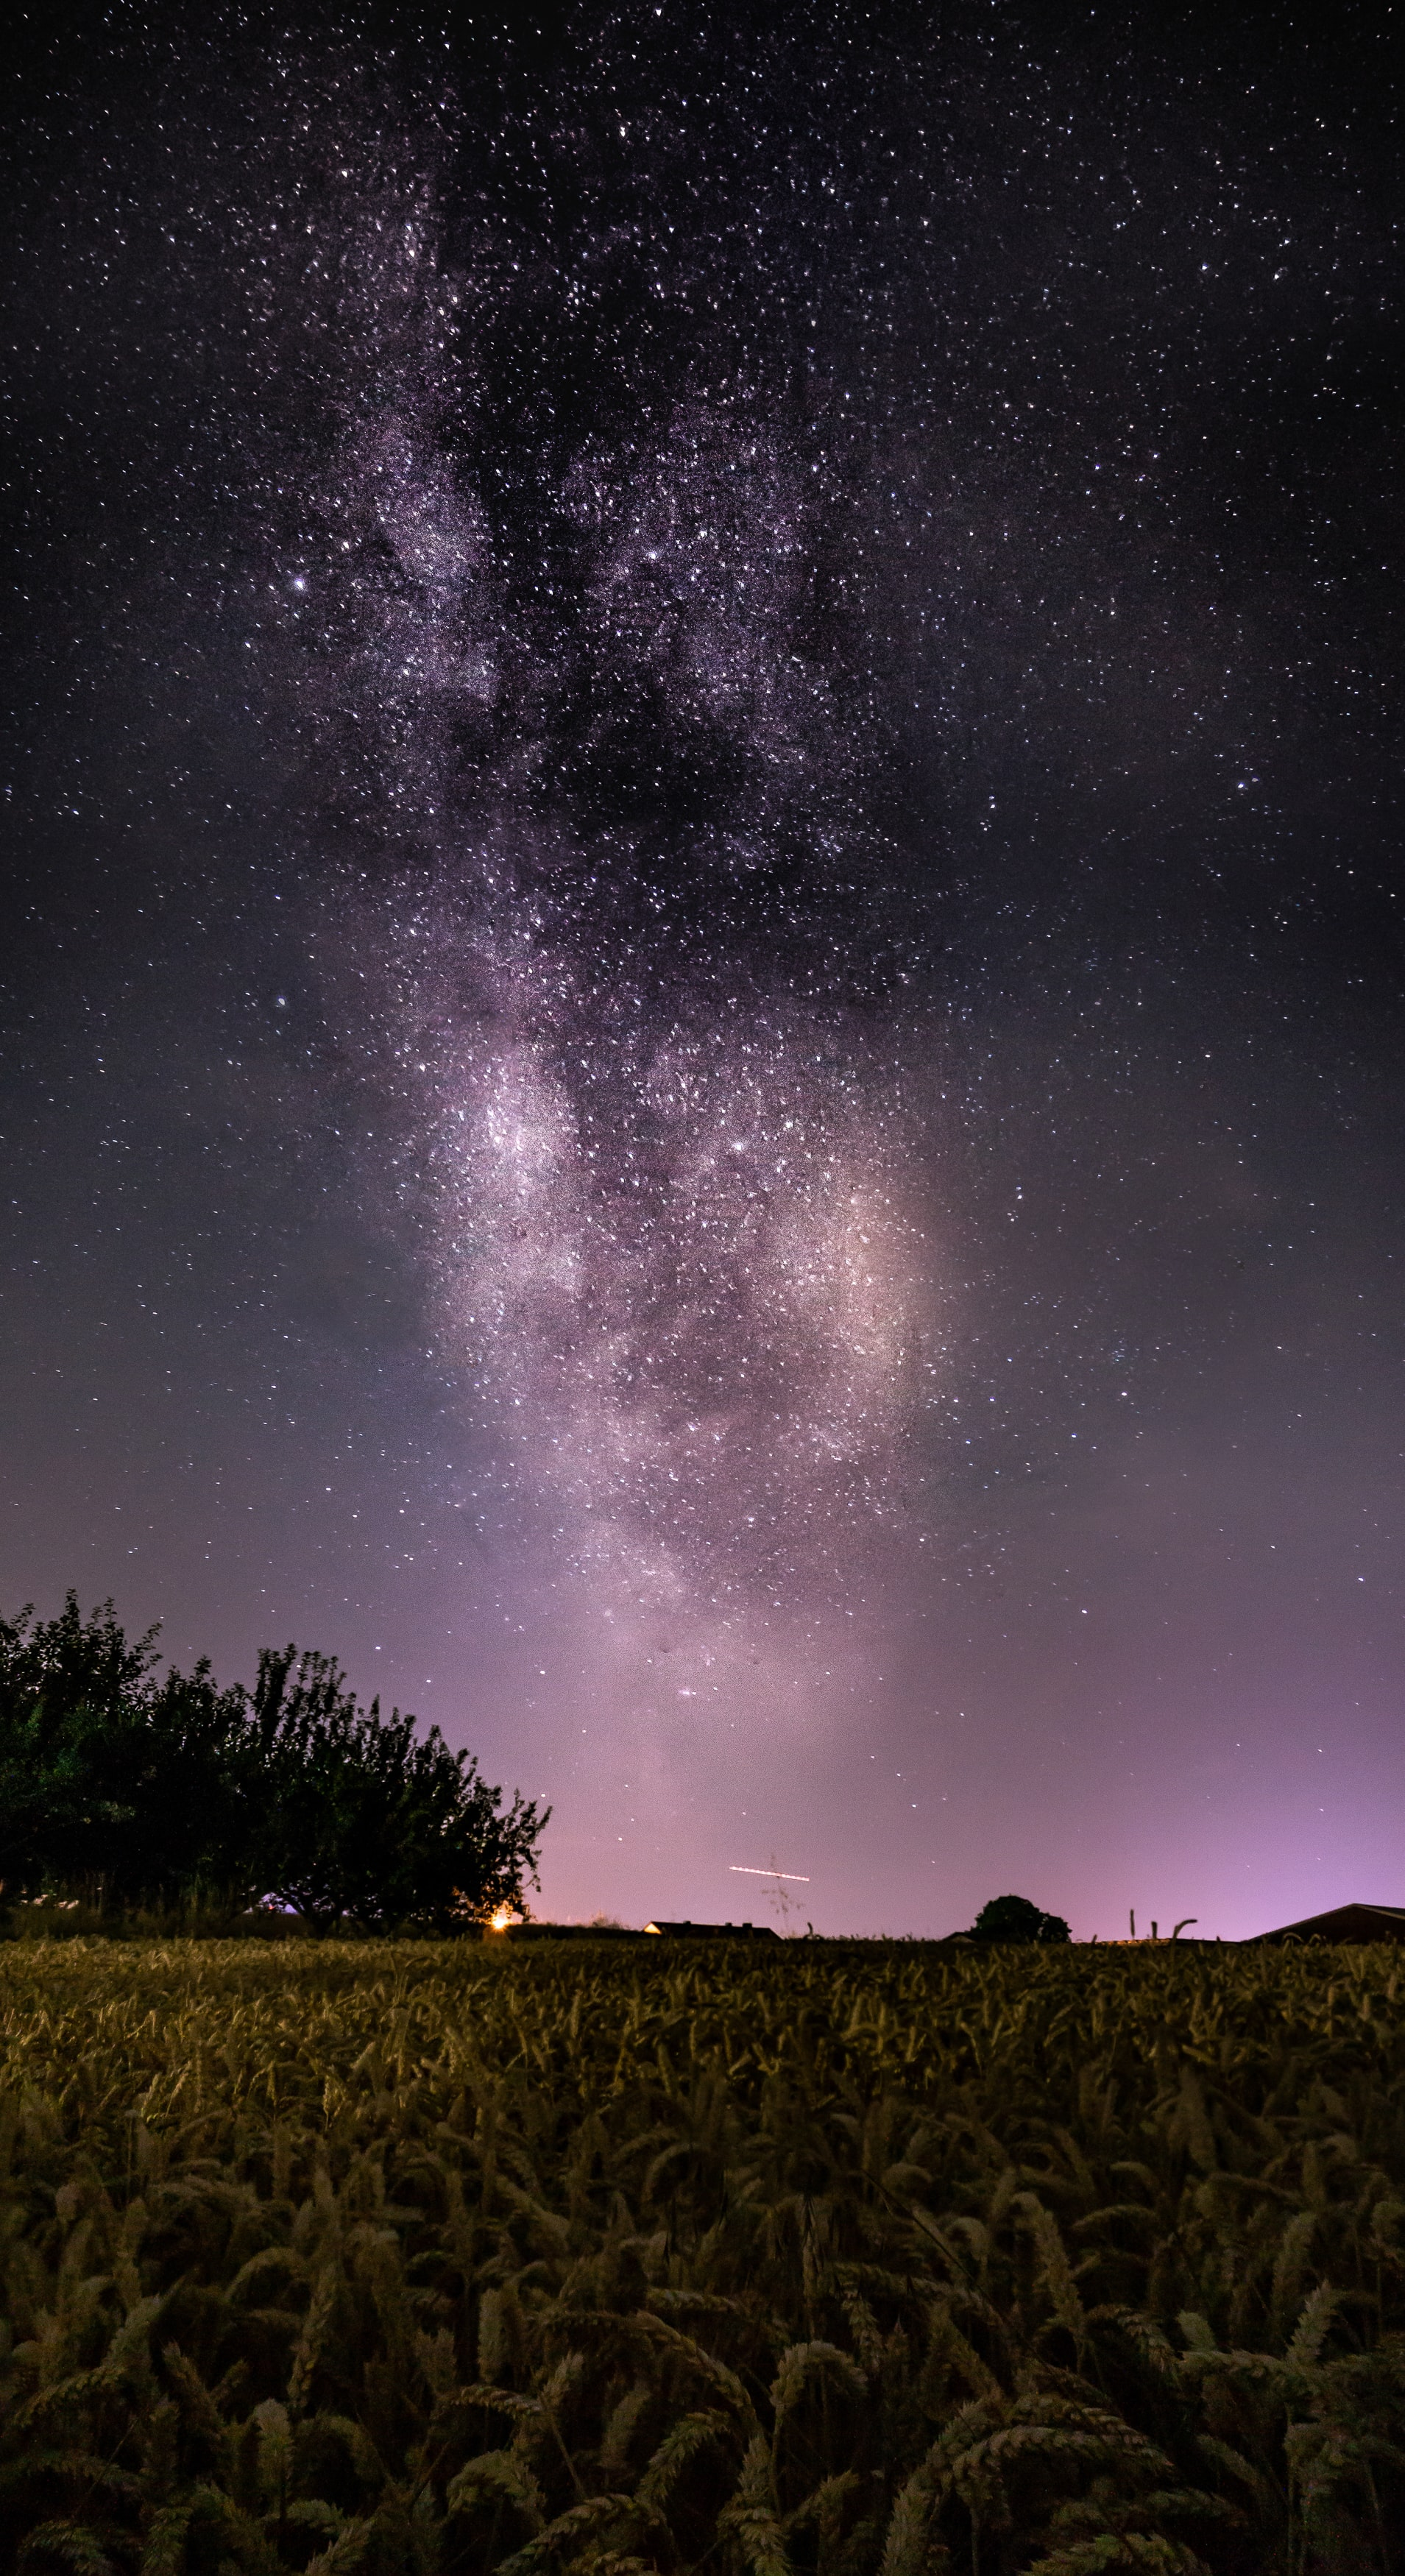 milky way over fields